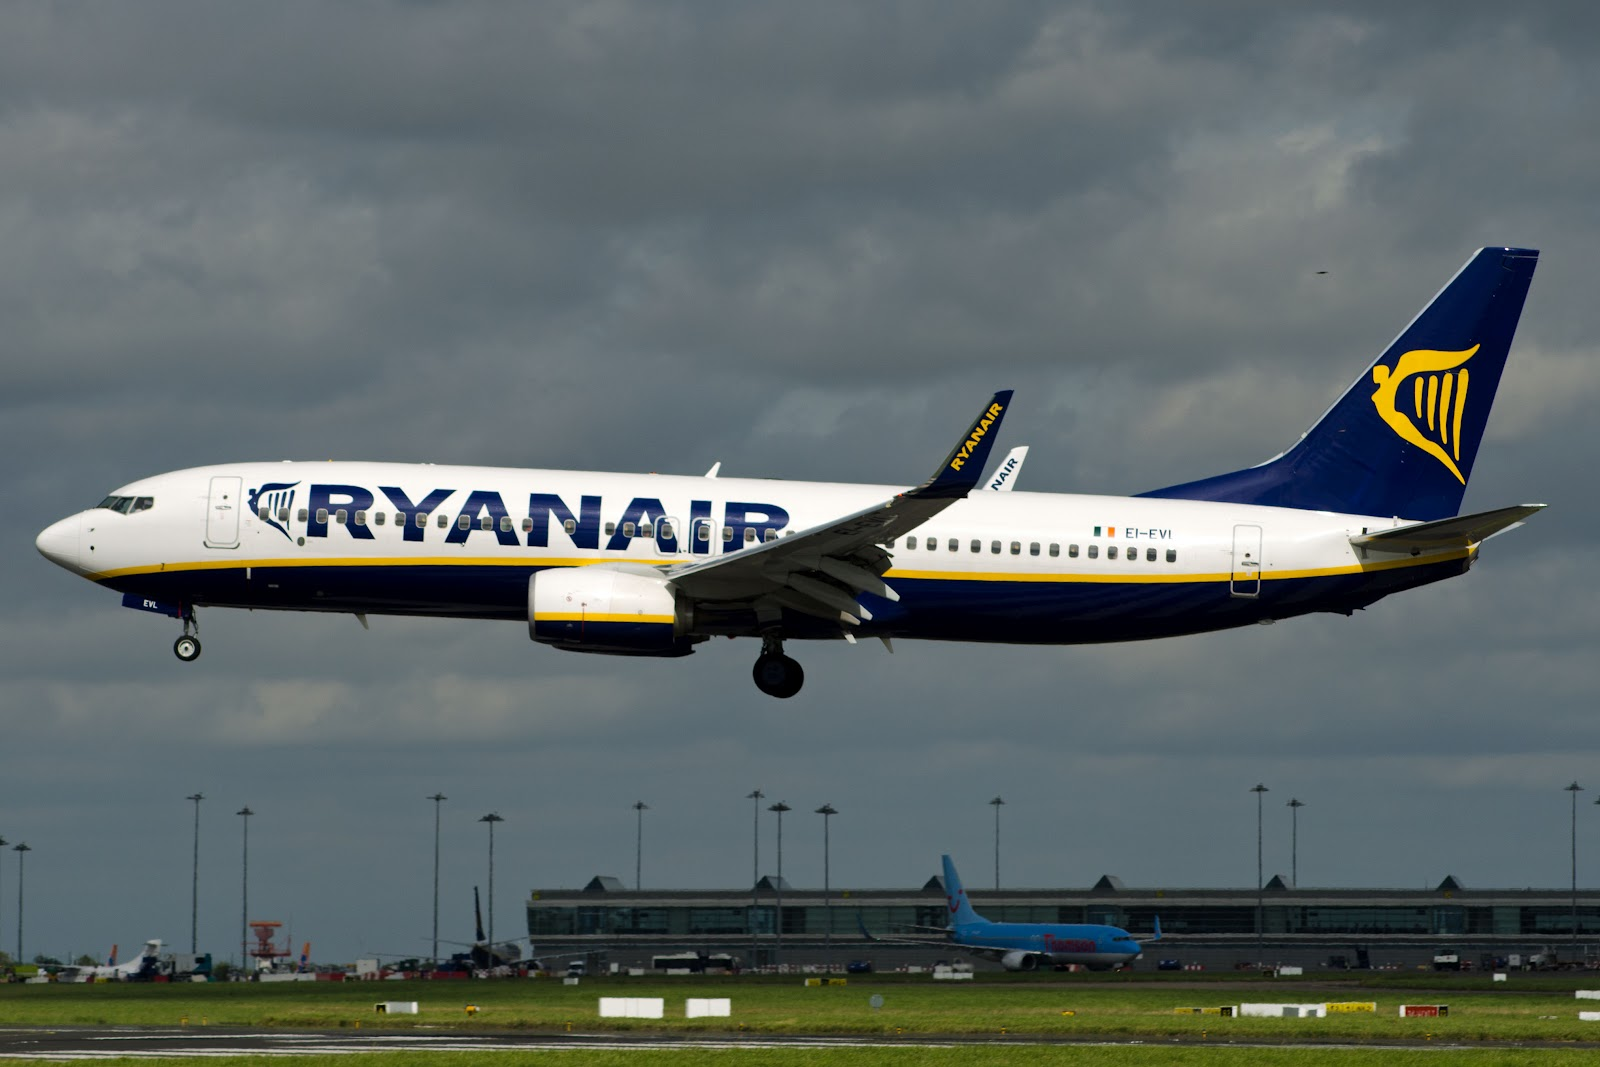 ryanair inc Ryanair holdings plc's rivals smell blood in the discount giant's confrontation with its pilots and cabin crew and have pitched 'hiring now' signs in a bid to siphon off disgruntled staff .